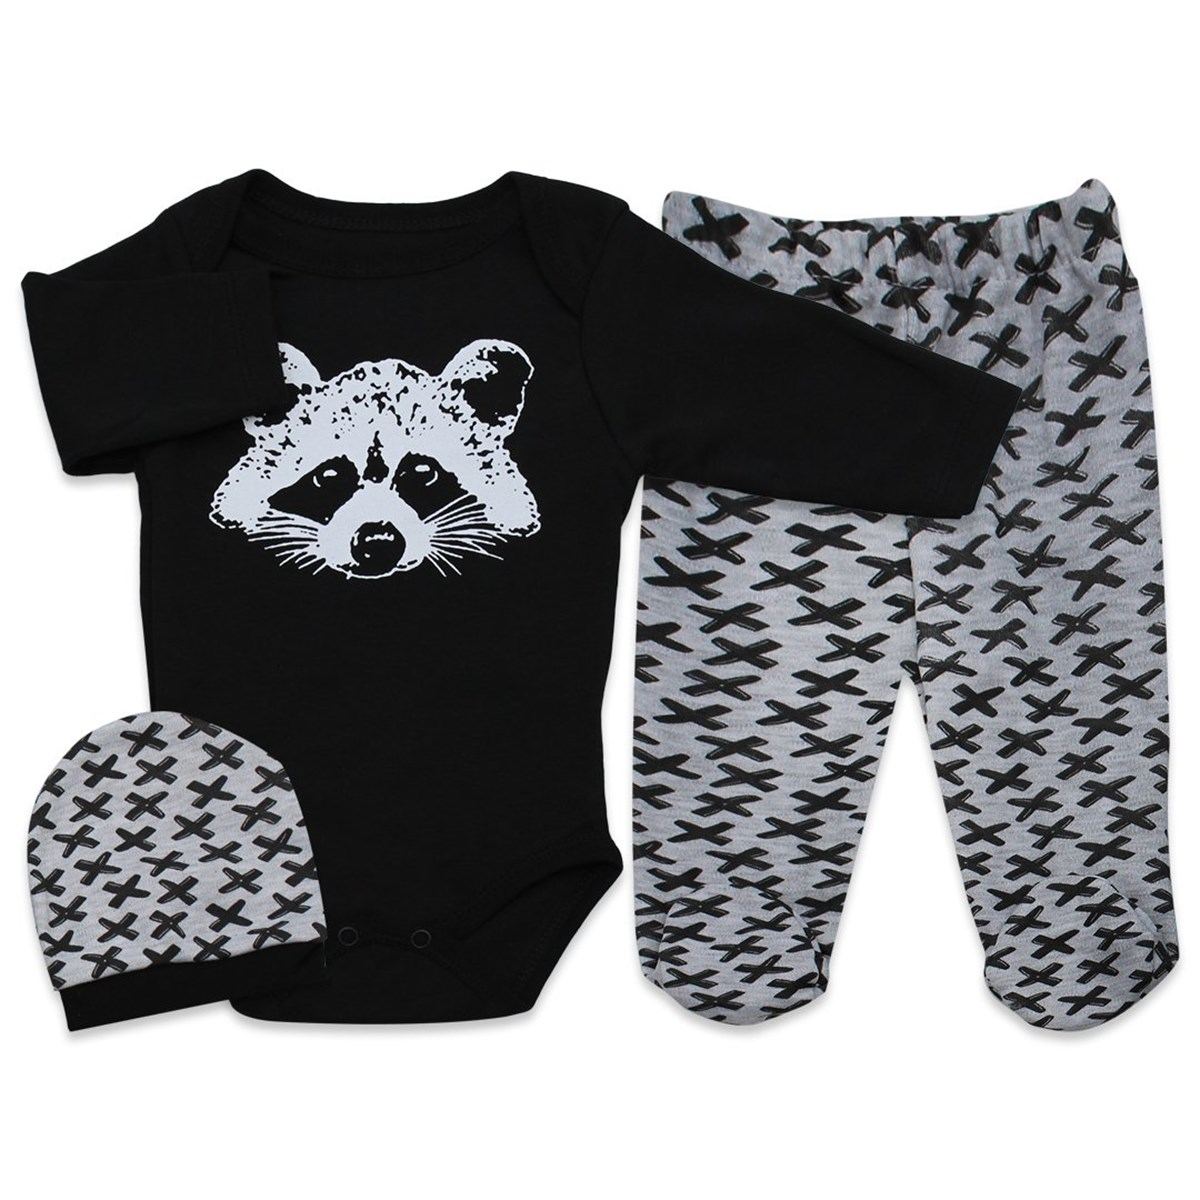 Baby Boy's Printed Black 3 Pieces Outfit Set